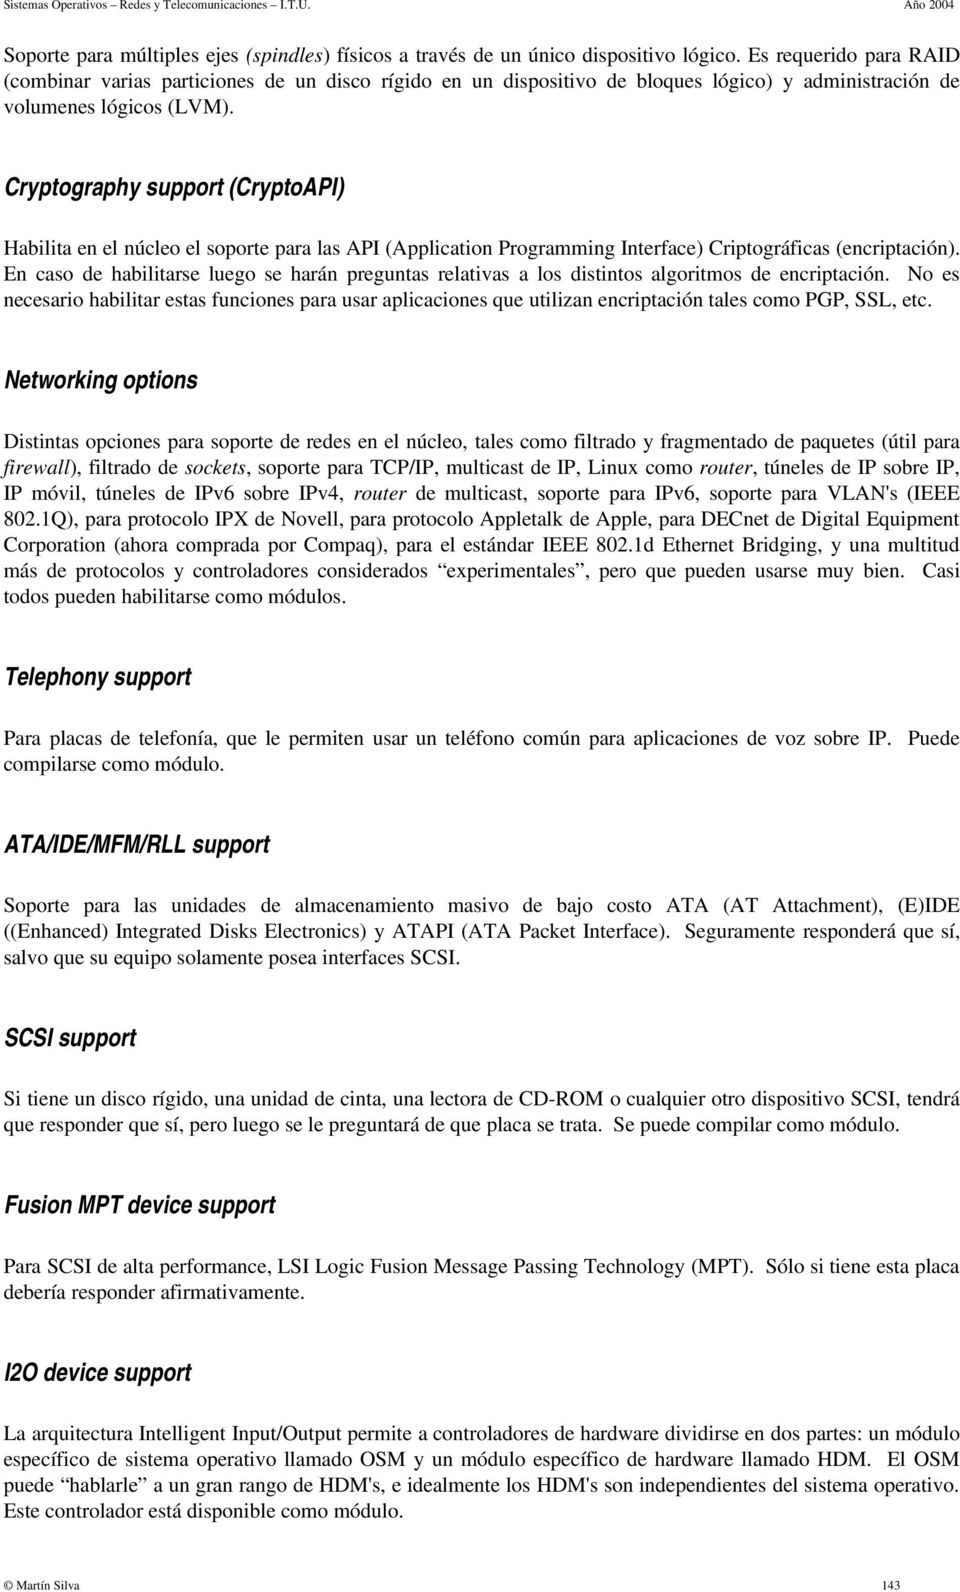 Cryptography support (CryptoAPI) Habilita en el núcleo el soporte para las API (Application Programming Interface) Criptográficas (encriptación).